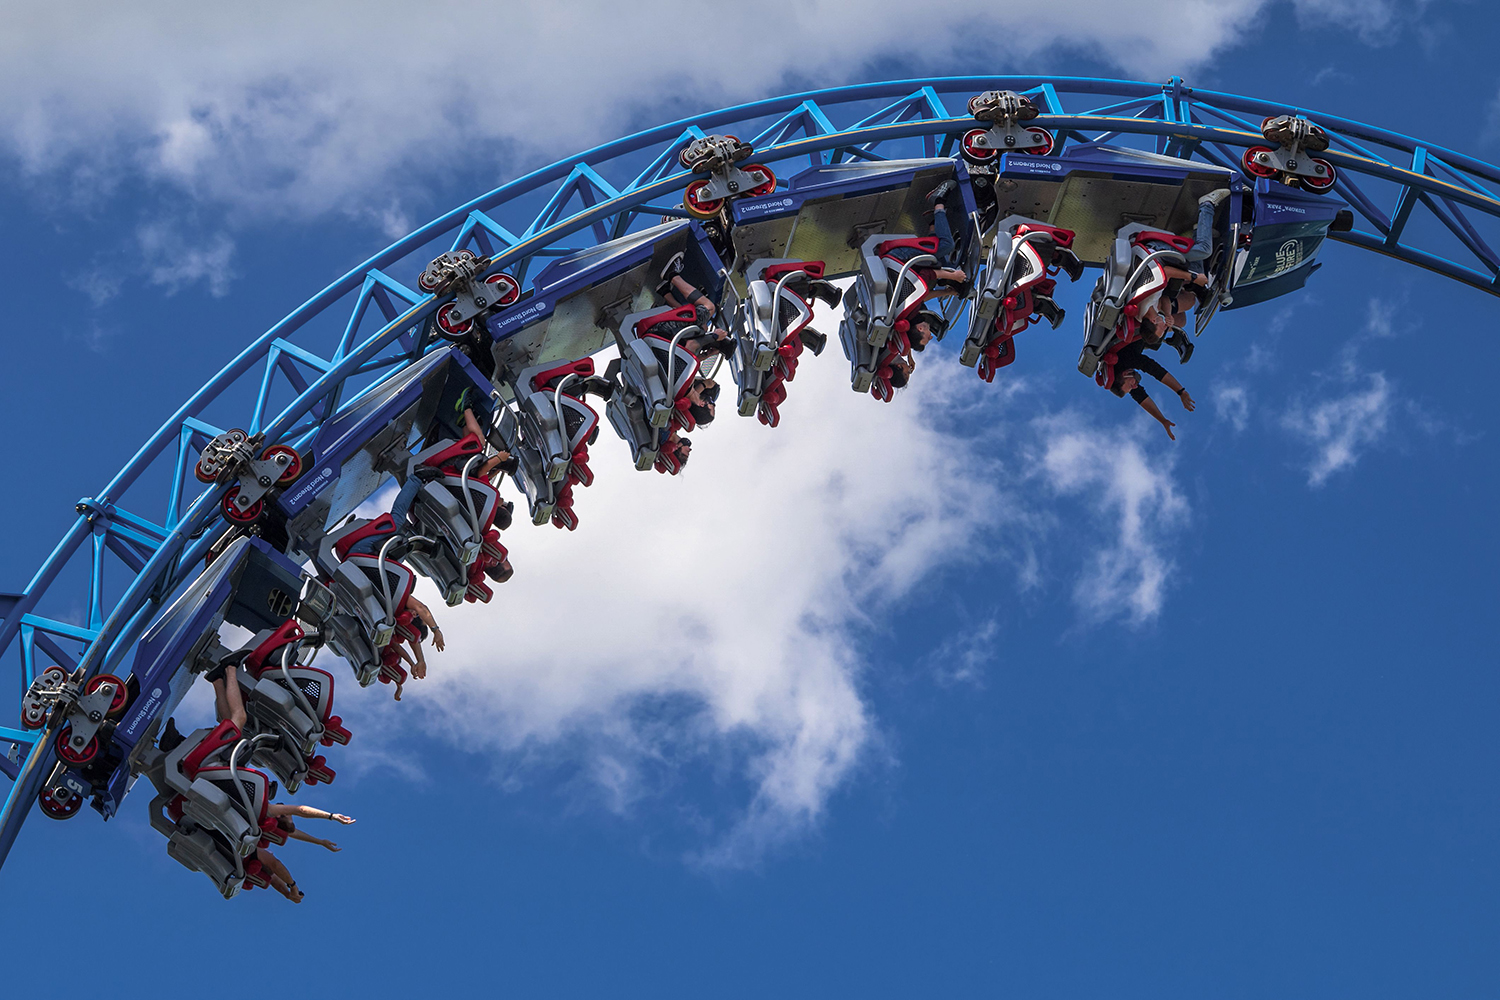 People wearing protective masks ride the Blue Fire roller coaster at Europa-Park in Rust, Germany, on reopening day May 29 following several weeks of lockdown measures. PATRICK HERTZOG/AFP via Getty Images